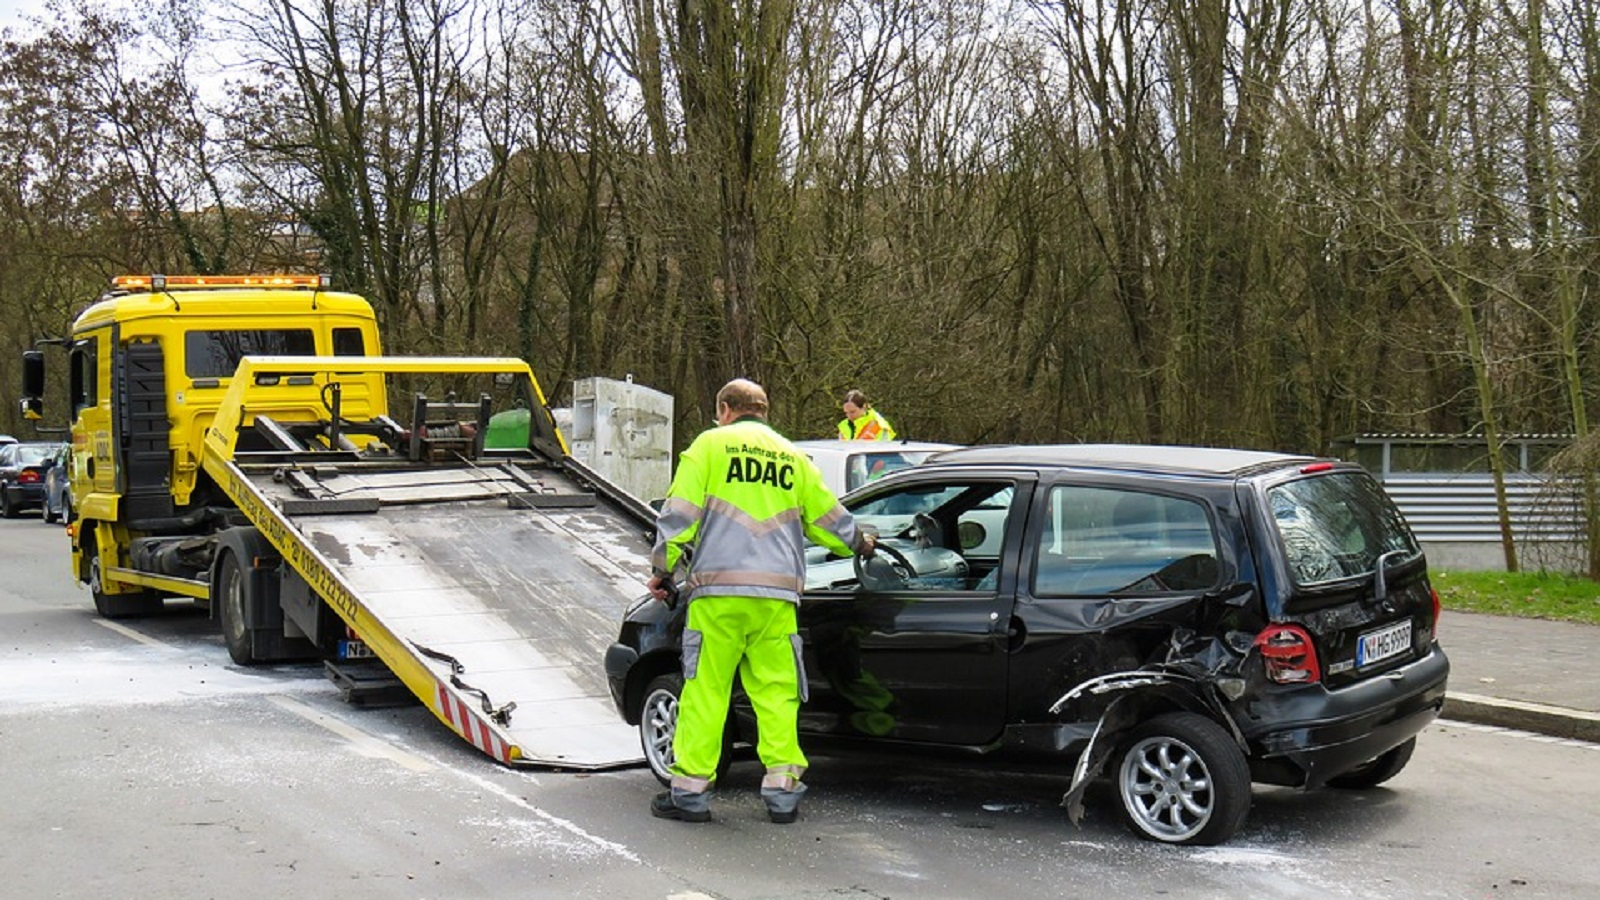 Stock photo of a damaged car being towed away from an accident.